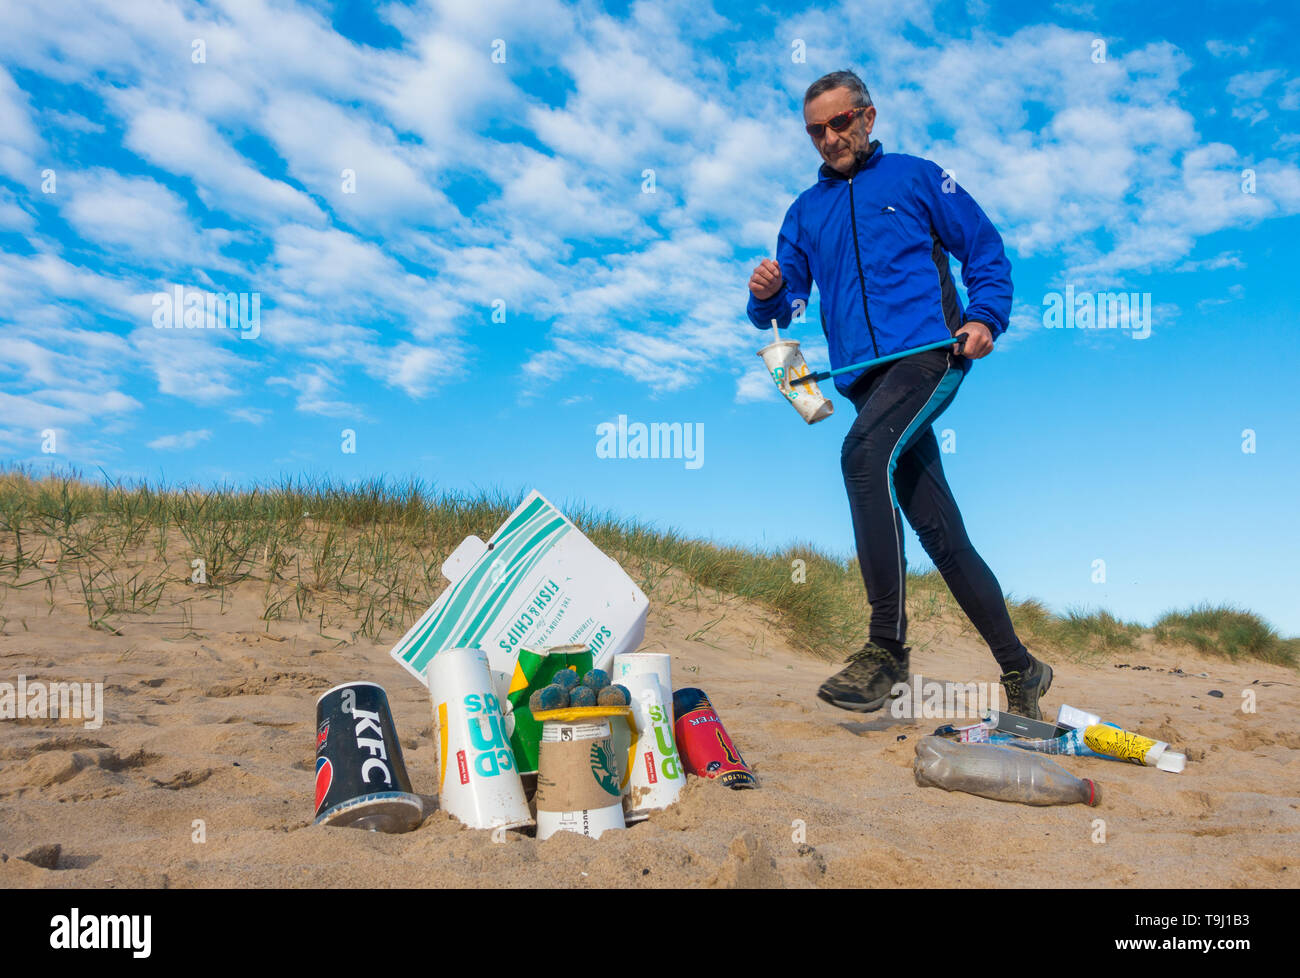 Seaton Carew, County Durham, UK. 19th May 2019. UK weather: a glorious morning for Plogging. A jogger collects rubbish on his morning run through the dunes at Seaton Carew on the north east coast of England. Plogging (picking up litter while jogging) is a Scandinavian lifestyle trend where joggers pick up rubbish/plastic as they run. Credit: Alan Dawson/Alamy Live News Stock Photo